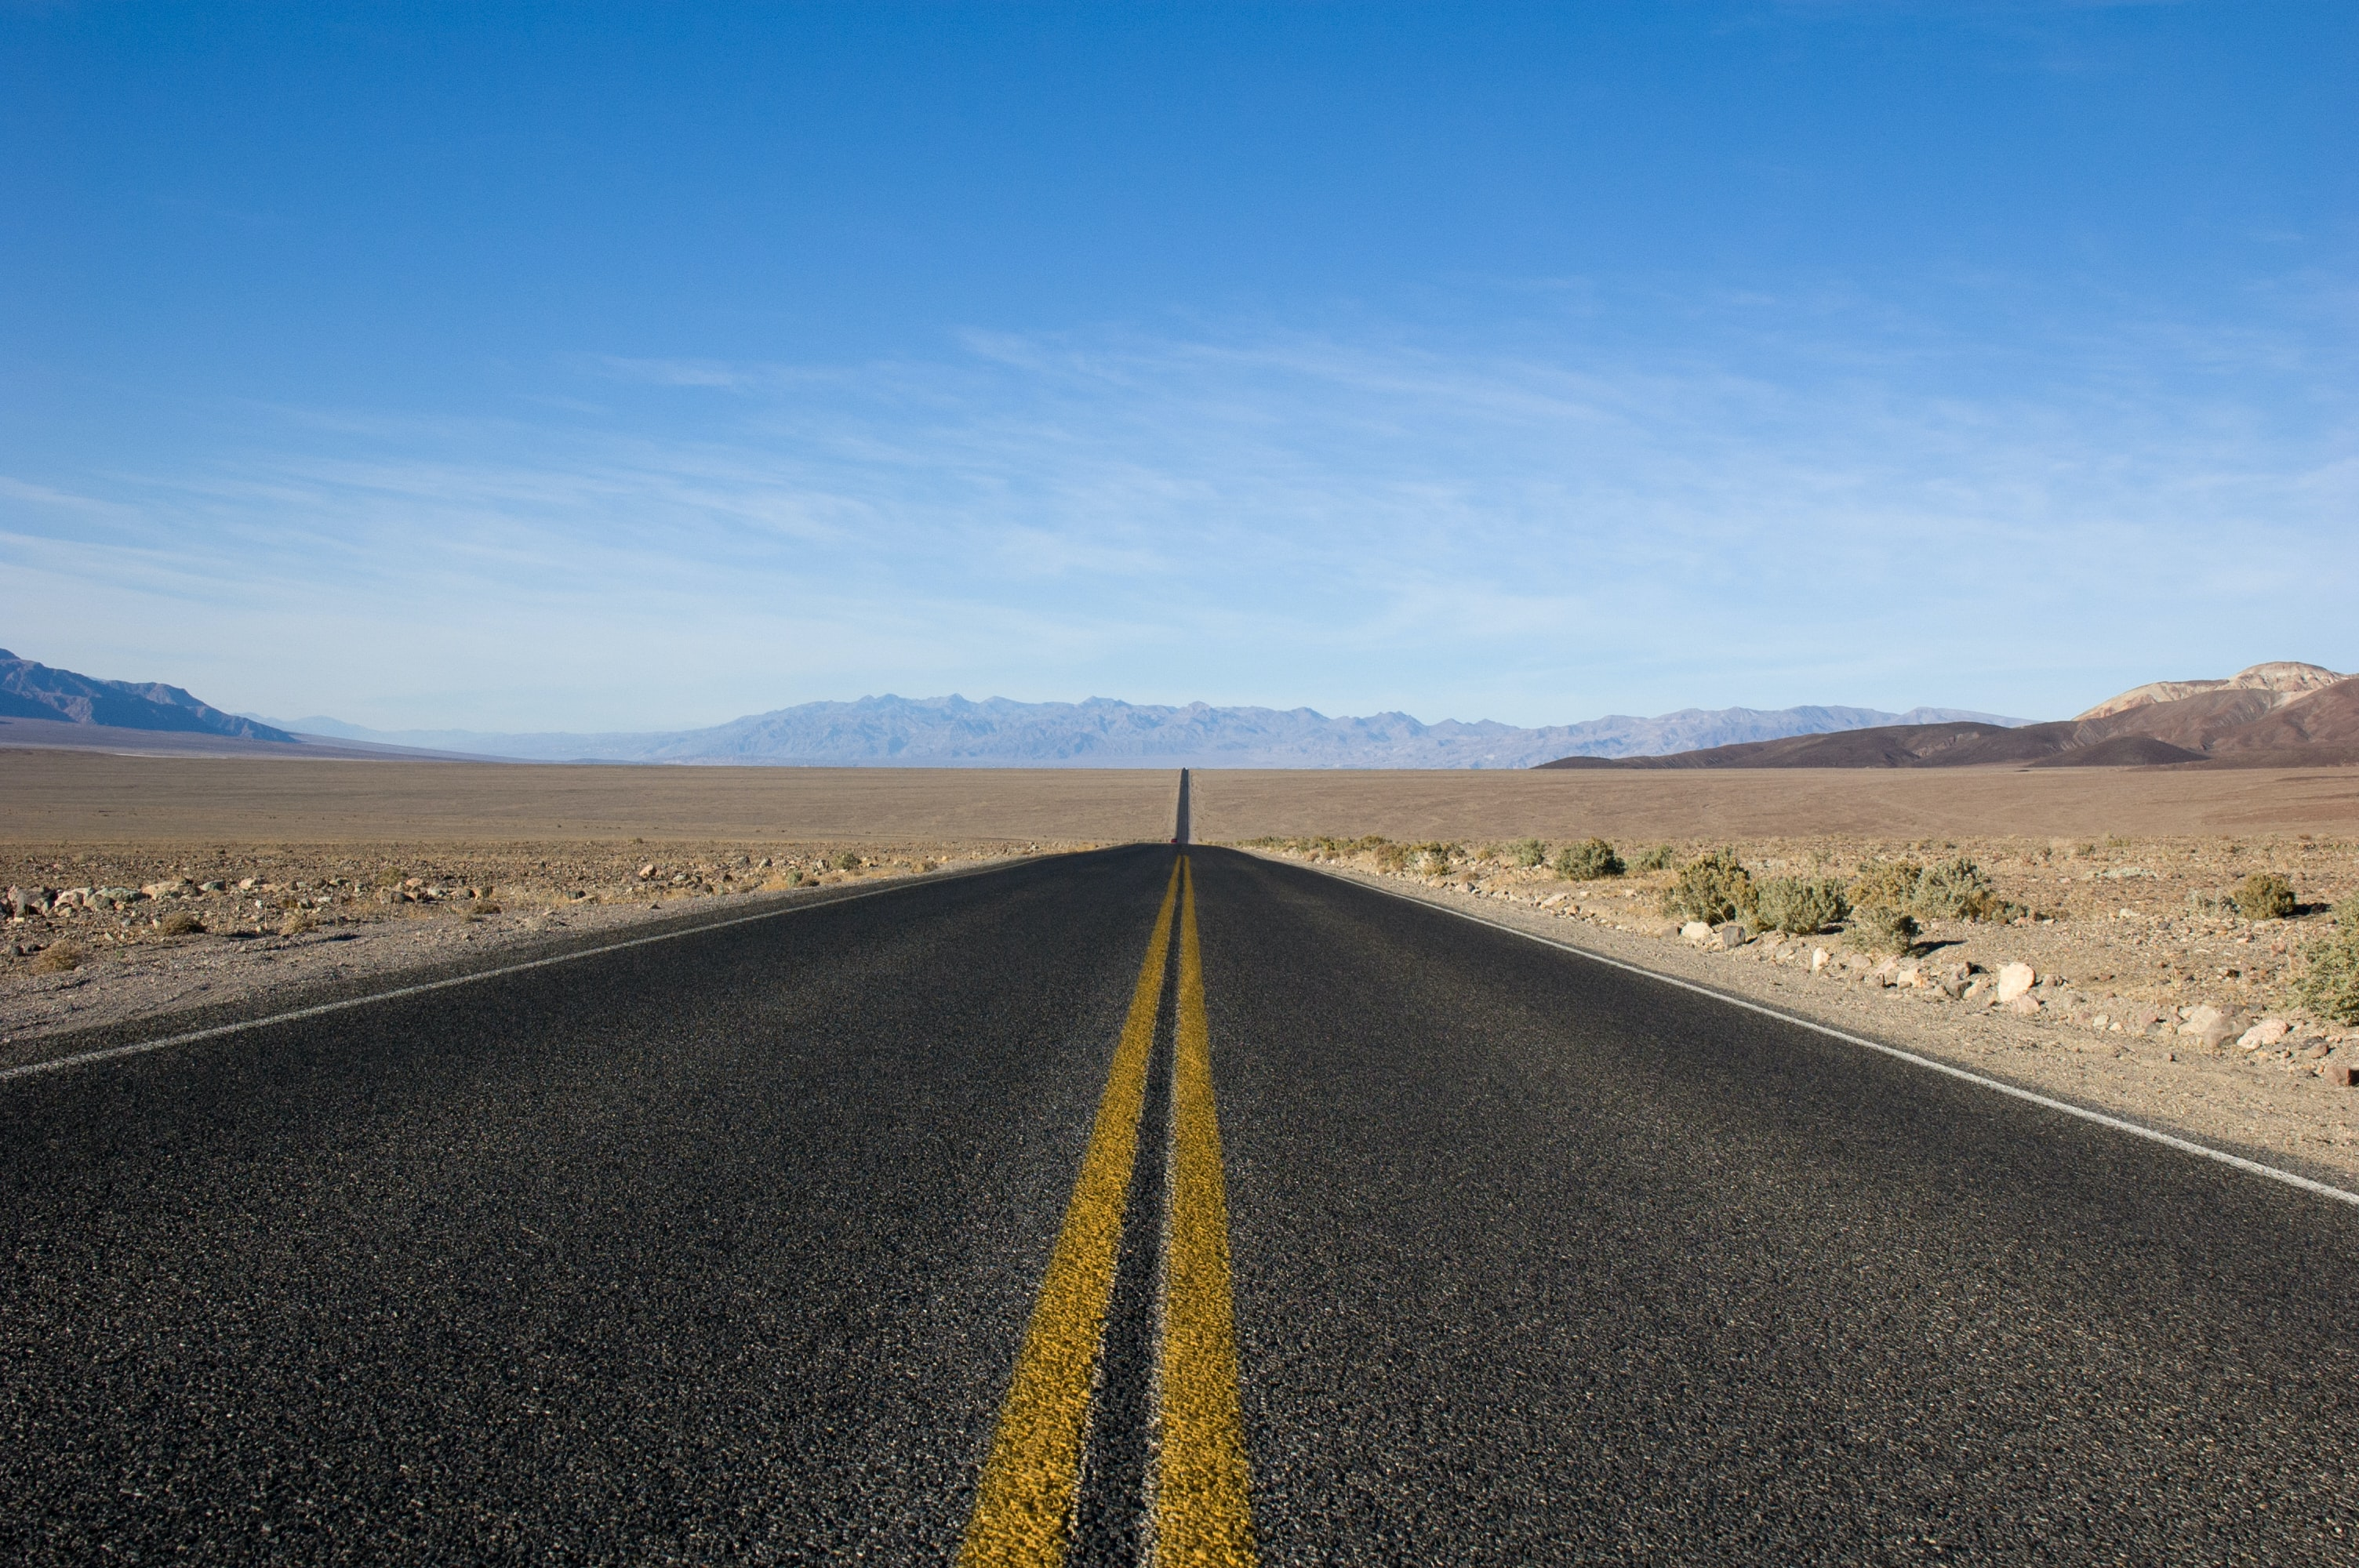 straight asphalt road between desert at daytime